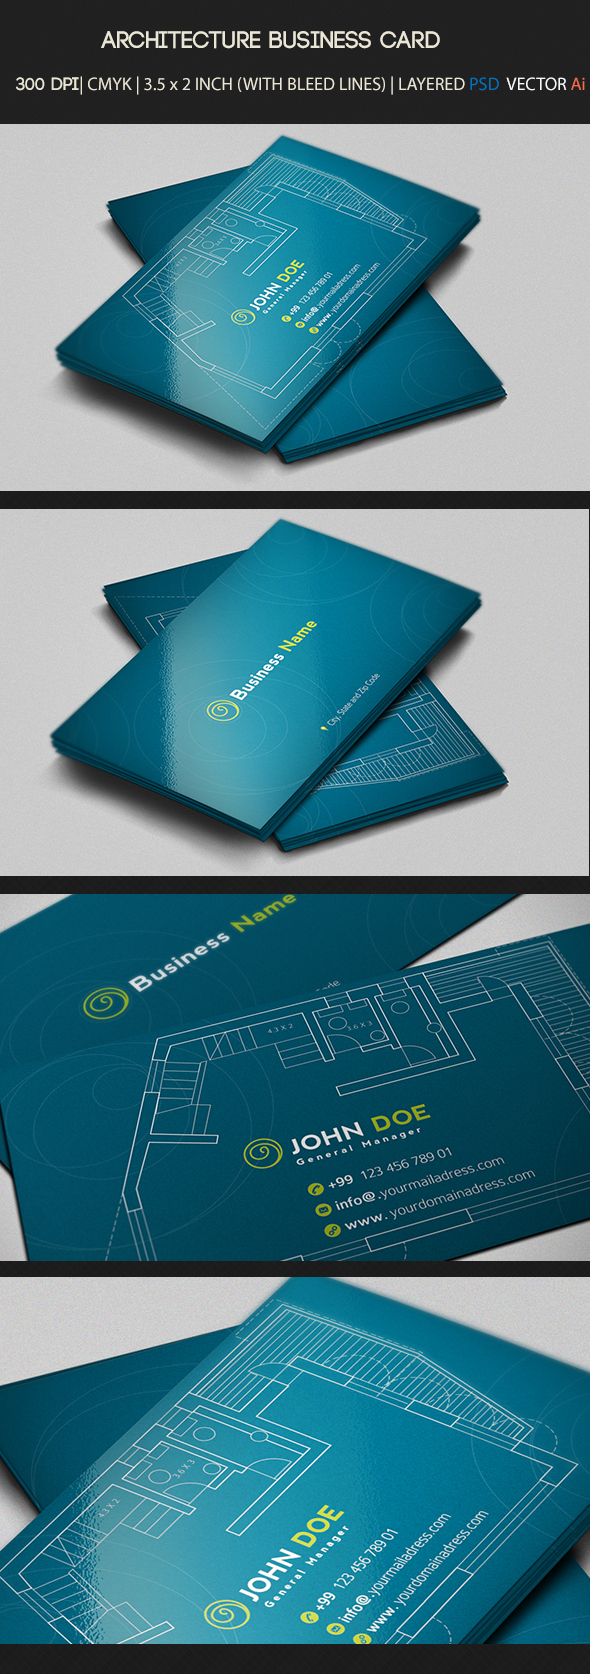 The use of fancy paper and creative design will definitely attract clients